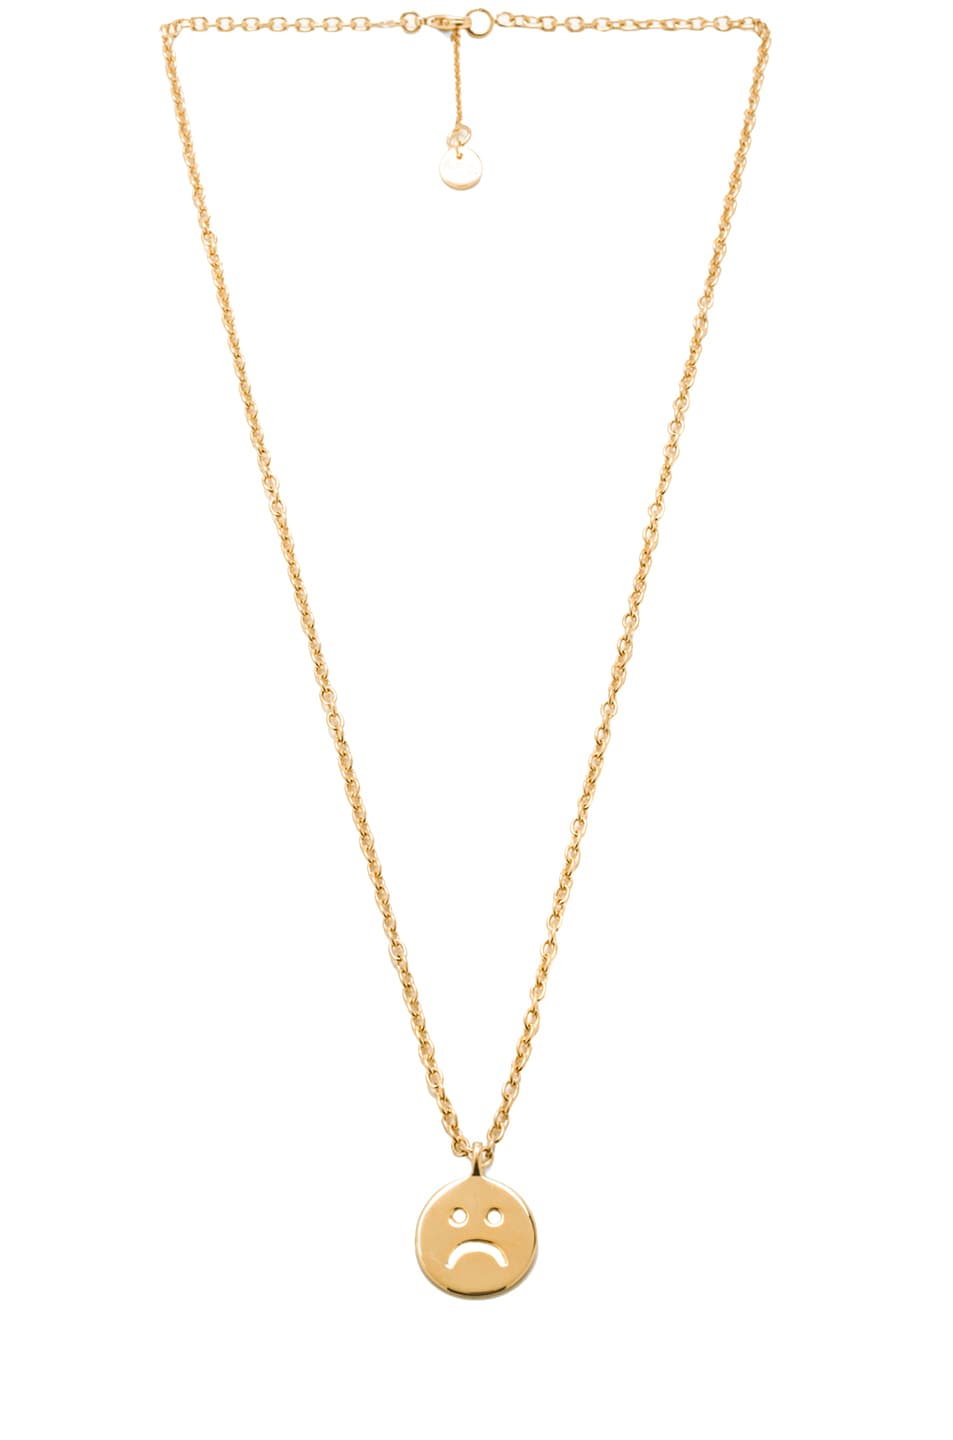 necklace apc andr andre brass in